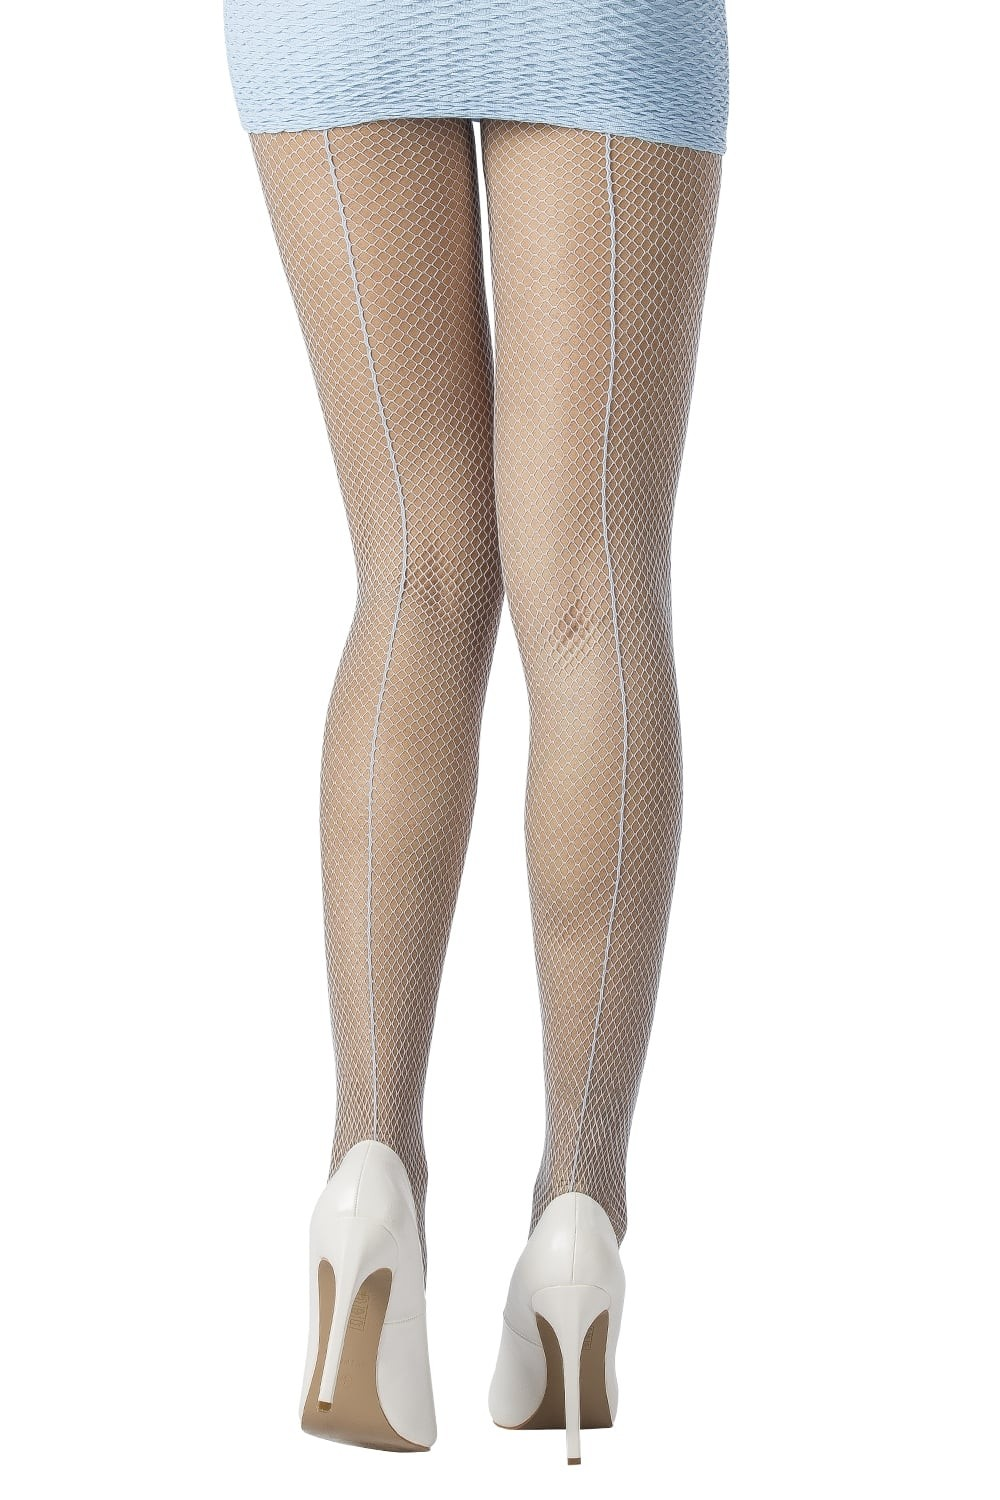 a2dbed7e4 ... BACK SEAM FISHNET TIGHTS. Ivory Nude Black Magnetic Blue Soft Sand Navy  Crystal Blue Lilac